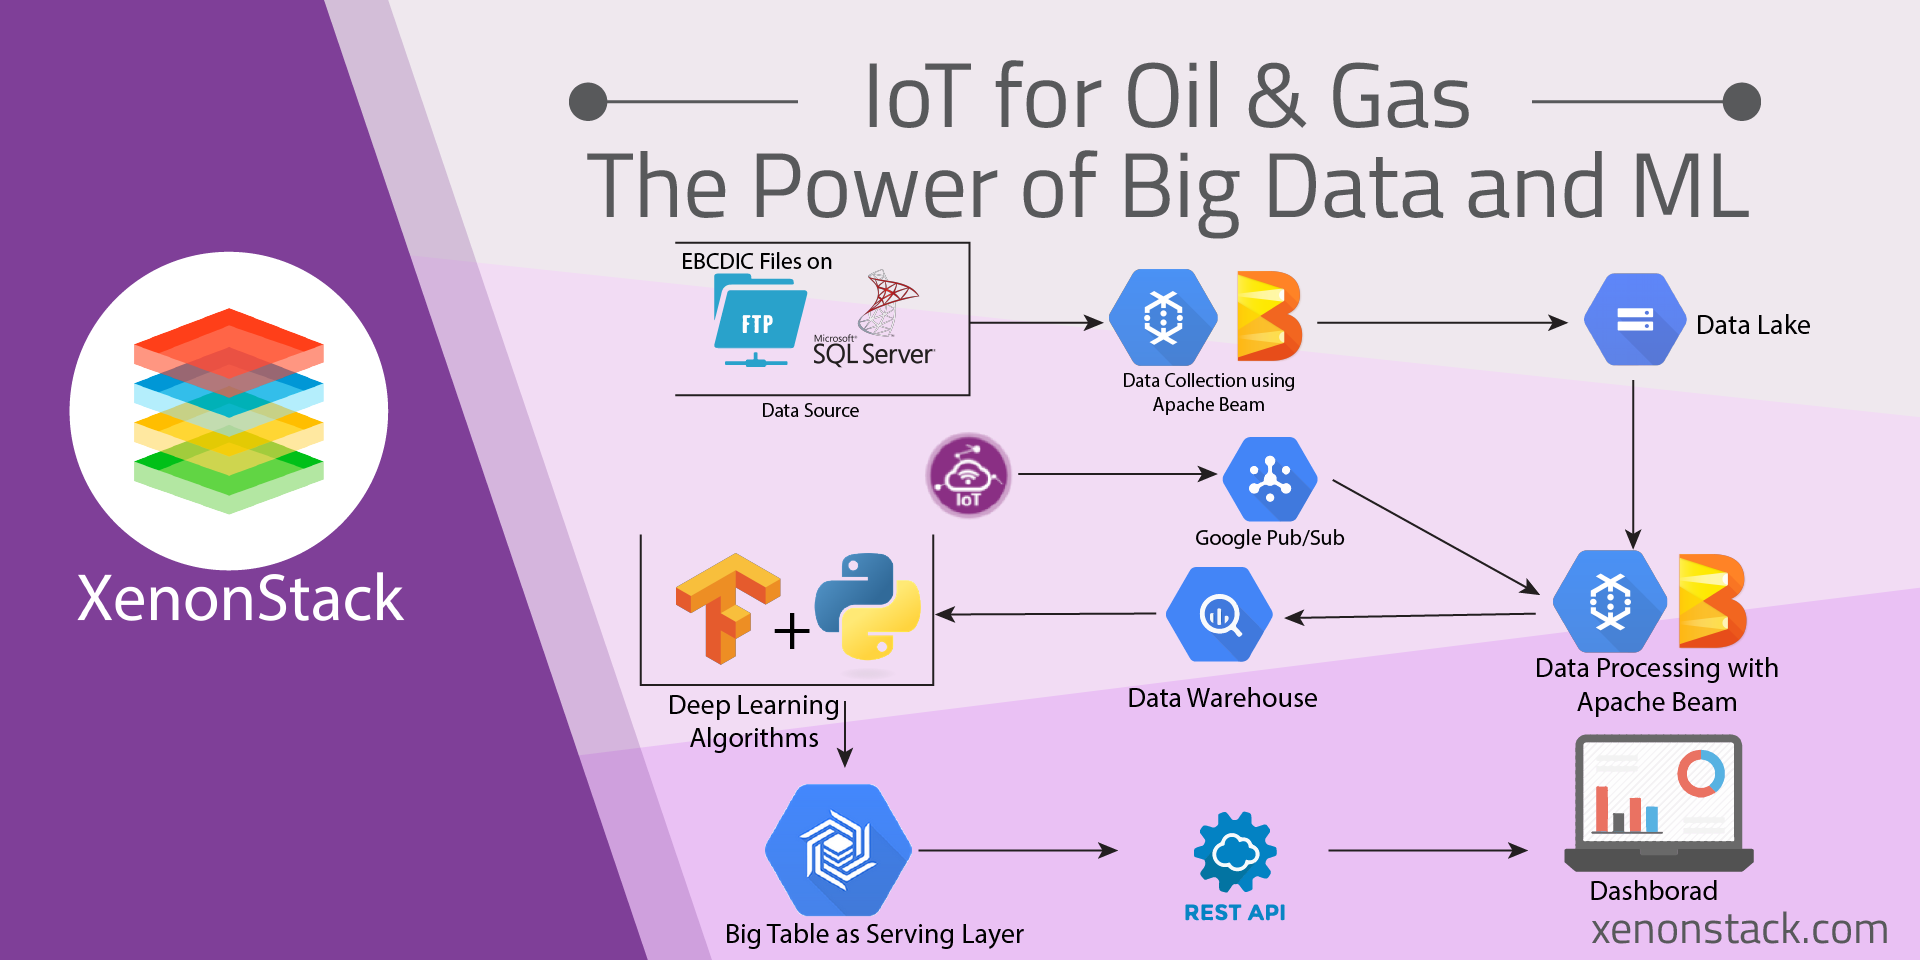 Big Data Analytics Platform for Oil and Gas Industries